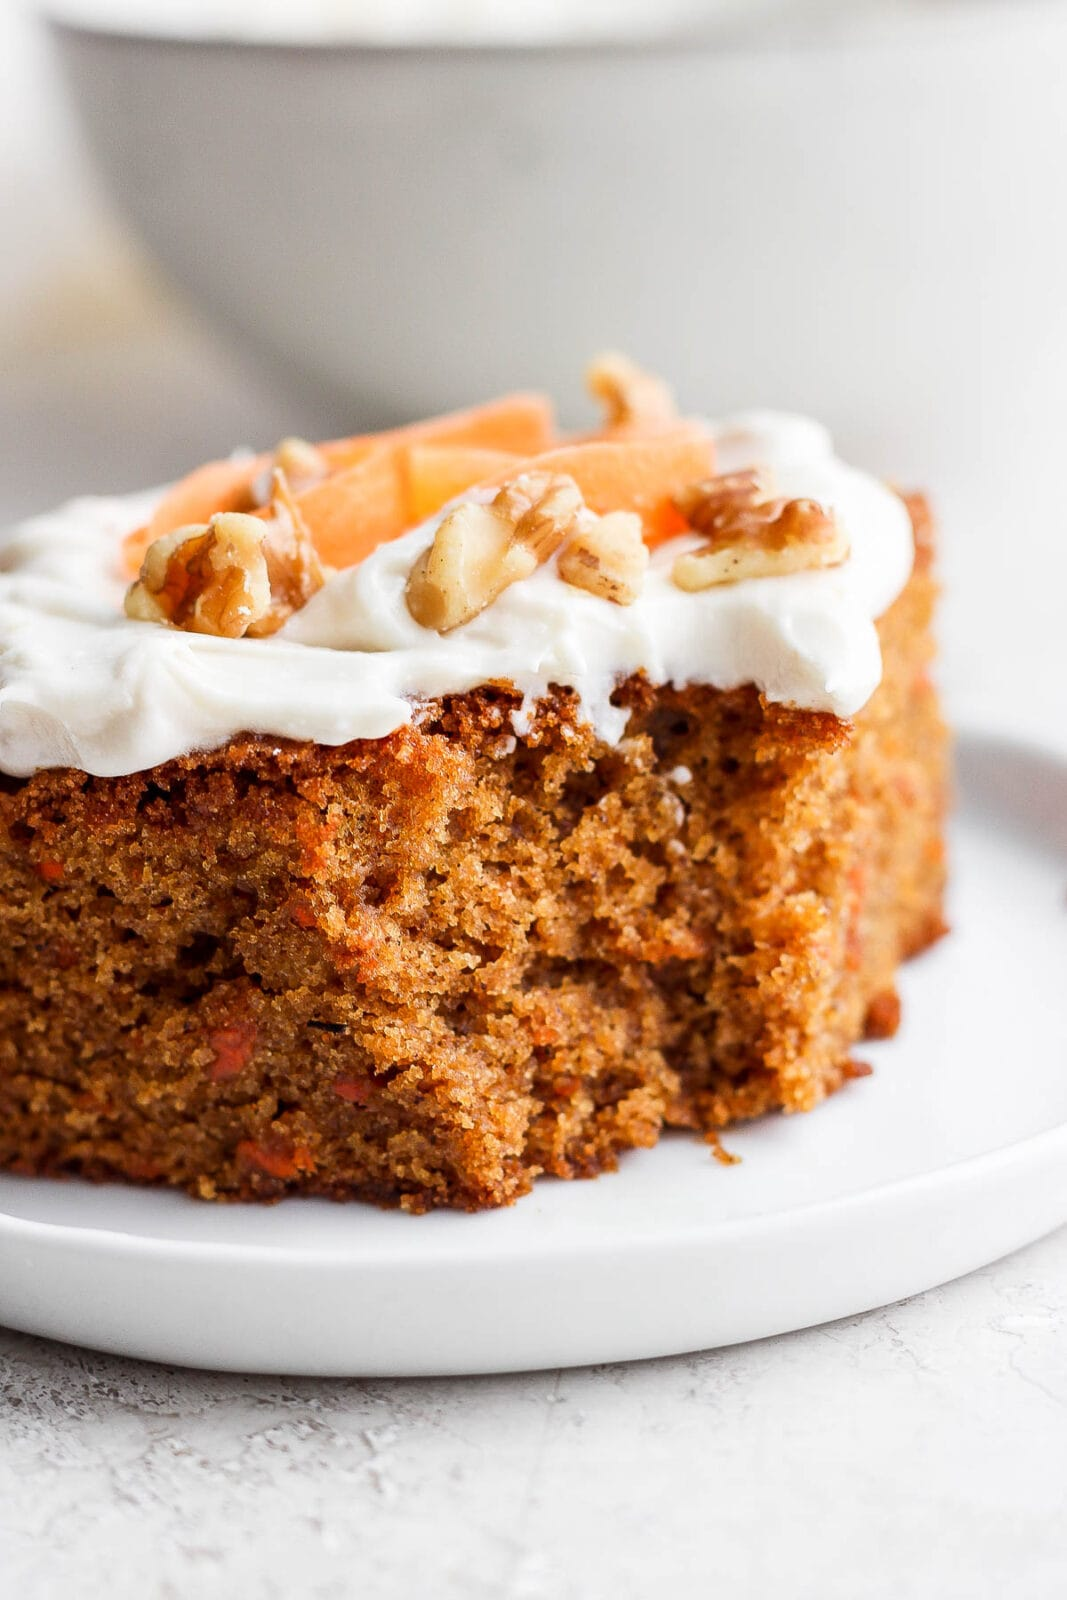 Slice of gluten free carrot cake with a bite out of it.